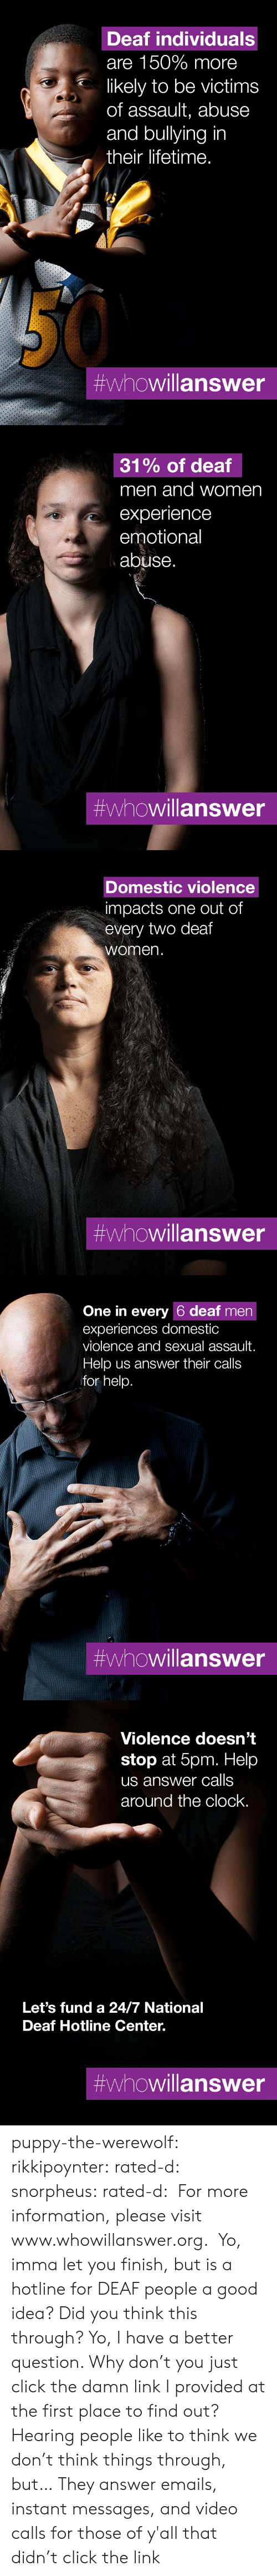 Click, Clock, and Imma Let You Finish But...: Deaf individuals  are 150% more  likely to be victims  of assault, abuse  and bullying in  their lifetime.  #whowillanswer   31% of deaf  men and women  experience  emotional  abuse.  #whowillanswer   Domestic violence  impacts one out of  every two deaf  women.  #whowillanswer   One in every 6 deaf men  experiences domestic  violence and sexual assault.  Help us answer their calls  for help.  #whowillanswer   Violence doesn't  stop at 5pm. Help  us answer calls  around the clock.  Let's fund a 24/7 National  Deaf Hotline Center.  puppy-the-werewolf: rikkipoynter:  rated-d:  snorpheus:  rated-d:   For more information, please visit www.whowillanswer.org.   Yo, imma let you finish, but is a hotline for DEAF people a good idea? Did you think this through?  Yo, I have a better question. Why don't you just click the damn link I provided at the first place to find out?     Hearing people like to think we don't think things through, but…   They answer emails, instant messages, and video calls for those of y'all that didn't click the link